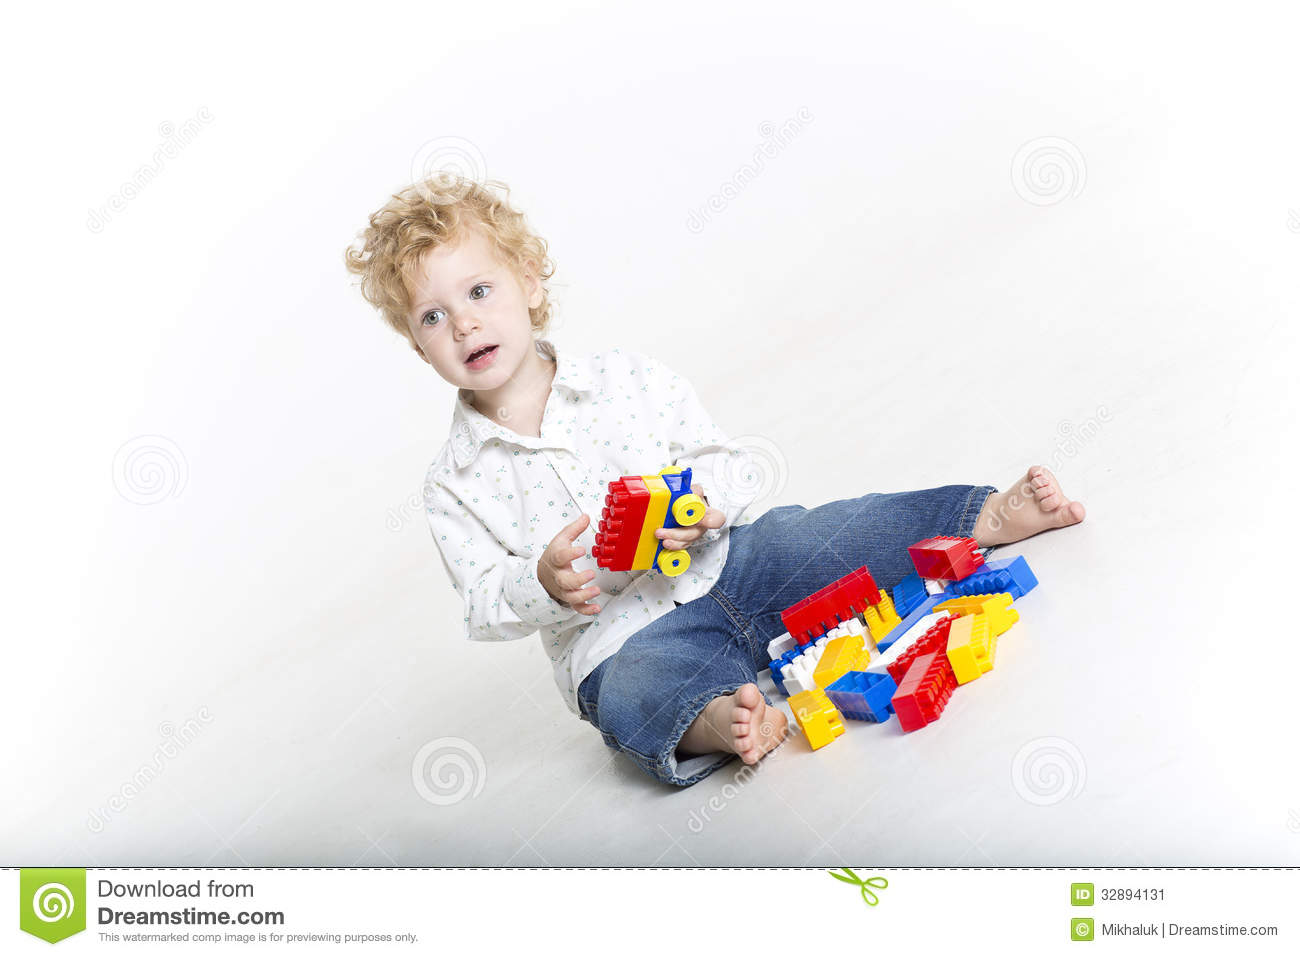 Cute Toddler Is Building With Legos Stock Image   Image  32894131